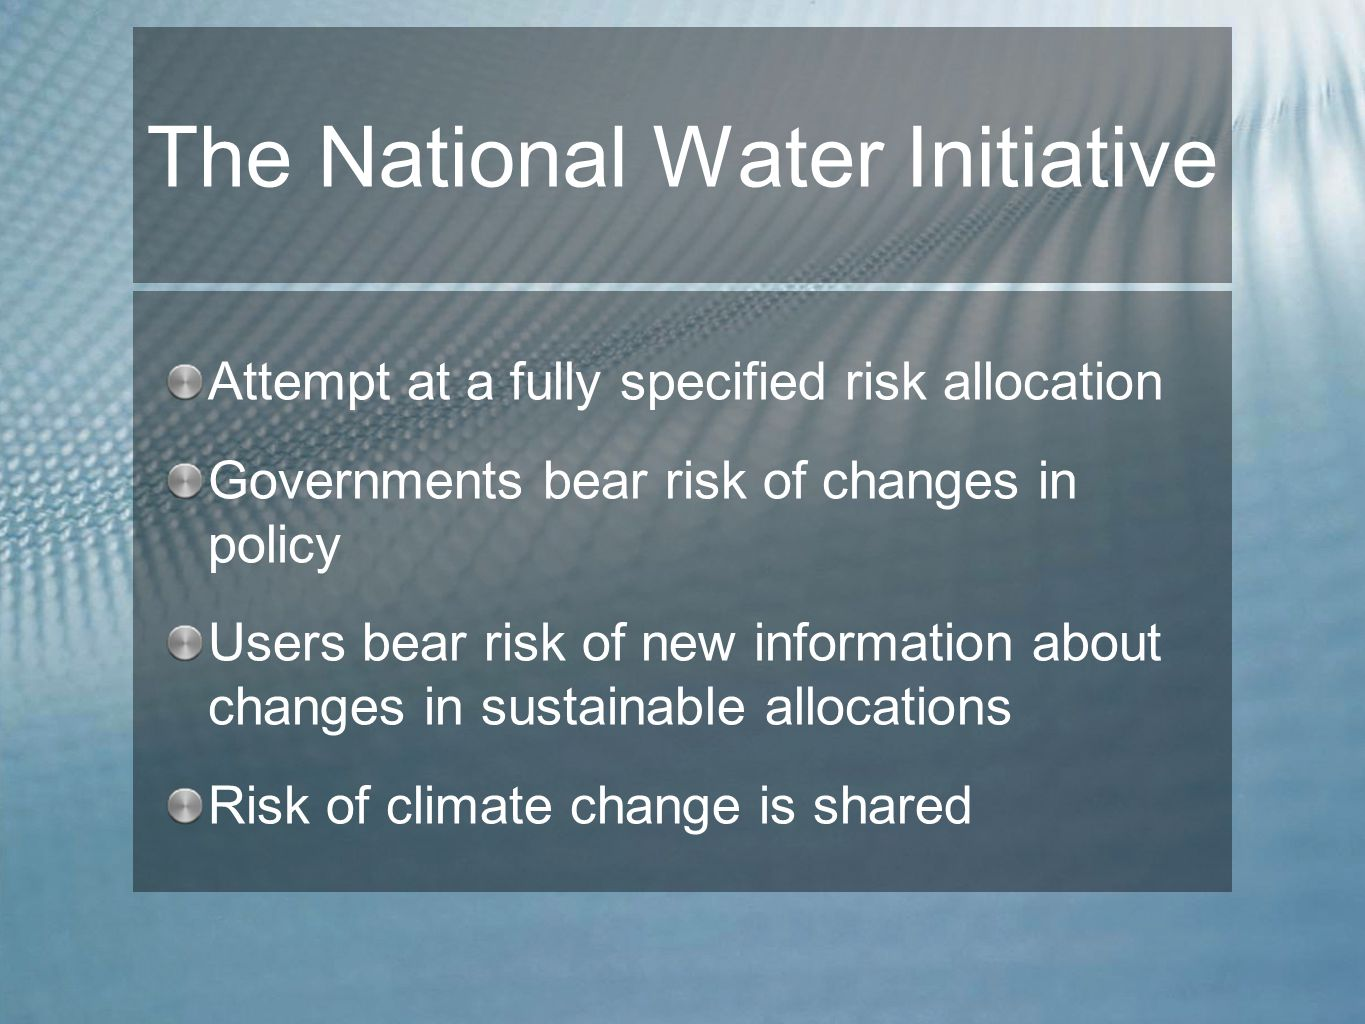 The National Water Initiative Attempt at a fully specified risk allocation Governments bear risk of changes in policy Users bear risk of new information about changes in sustainable allocations Risk of climate change is shared